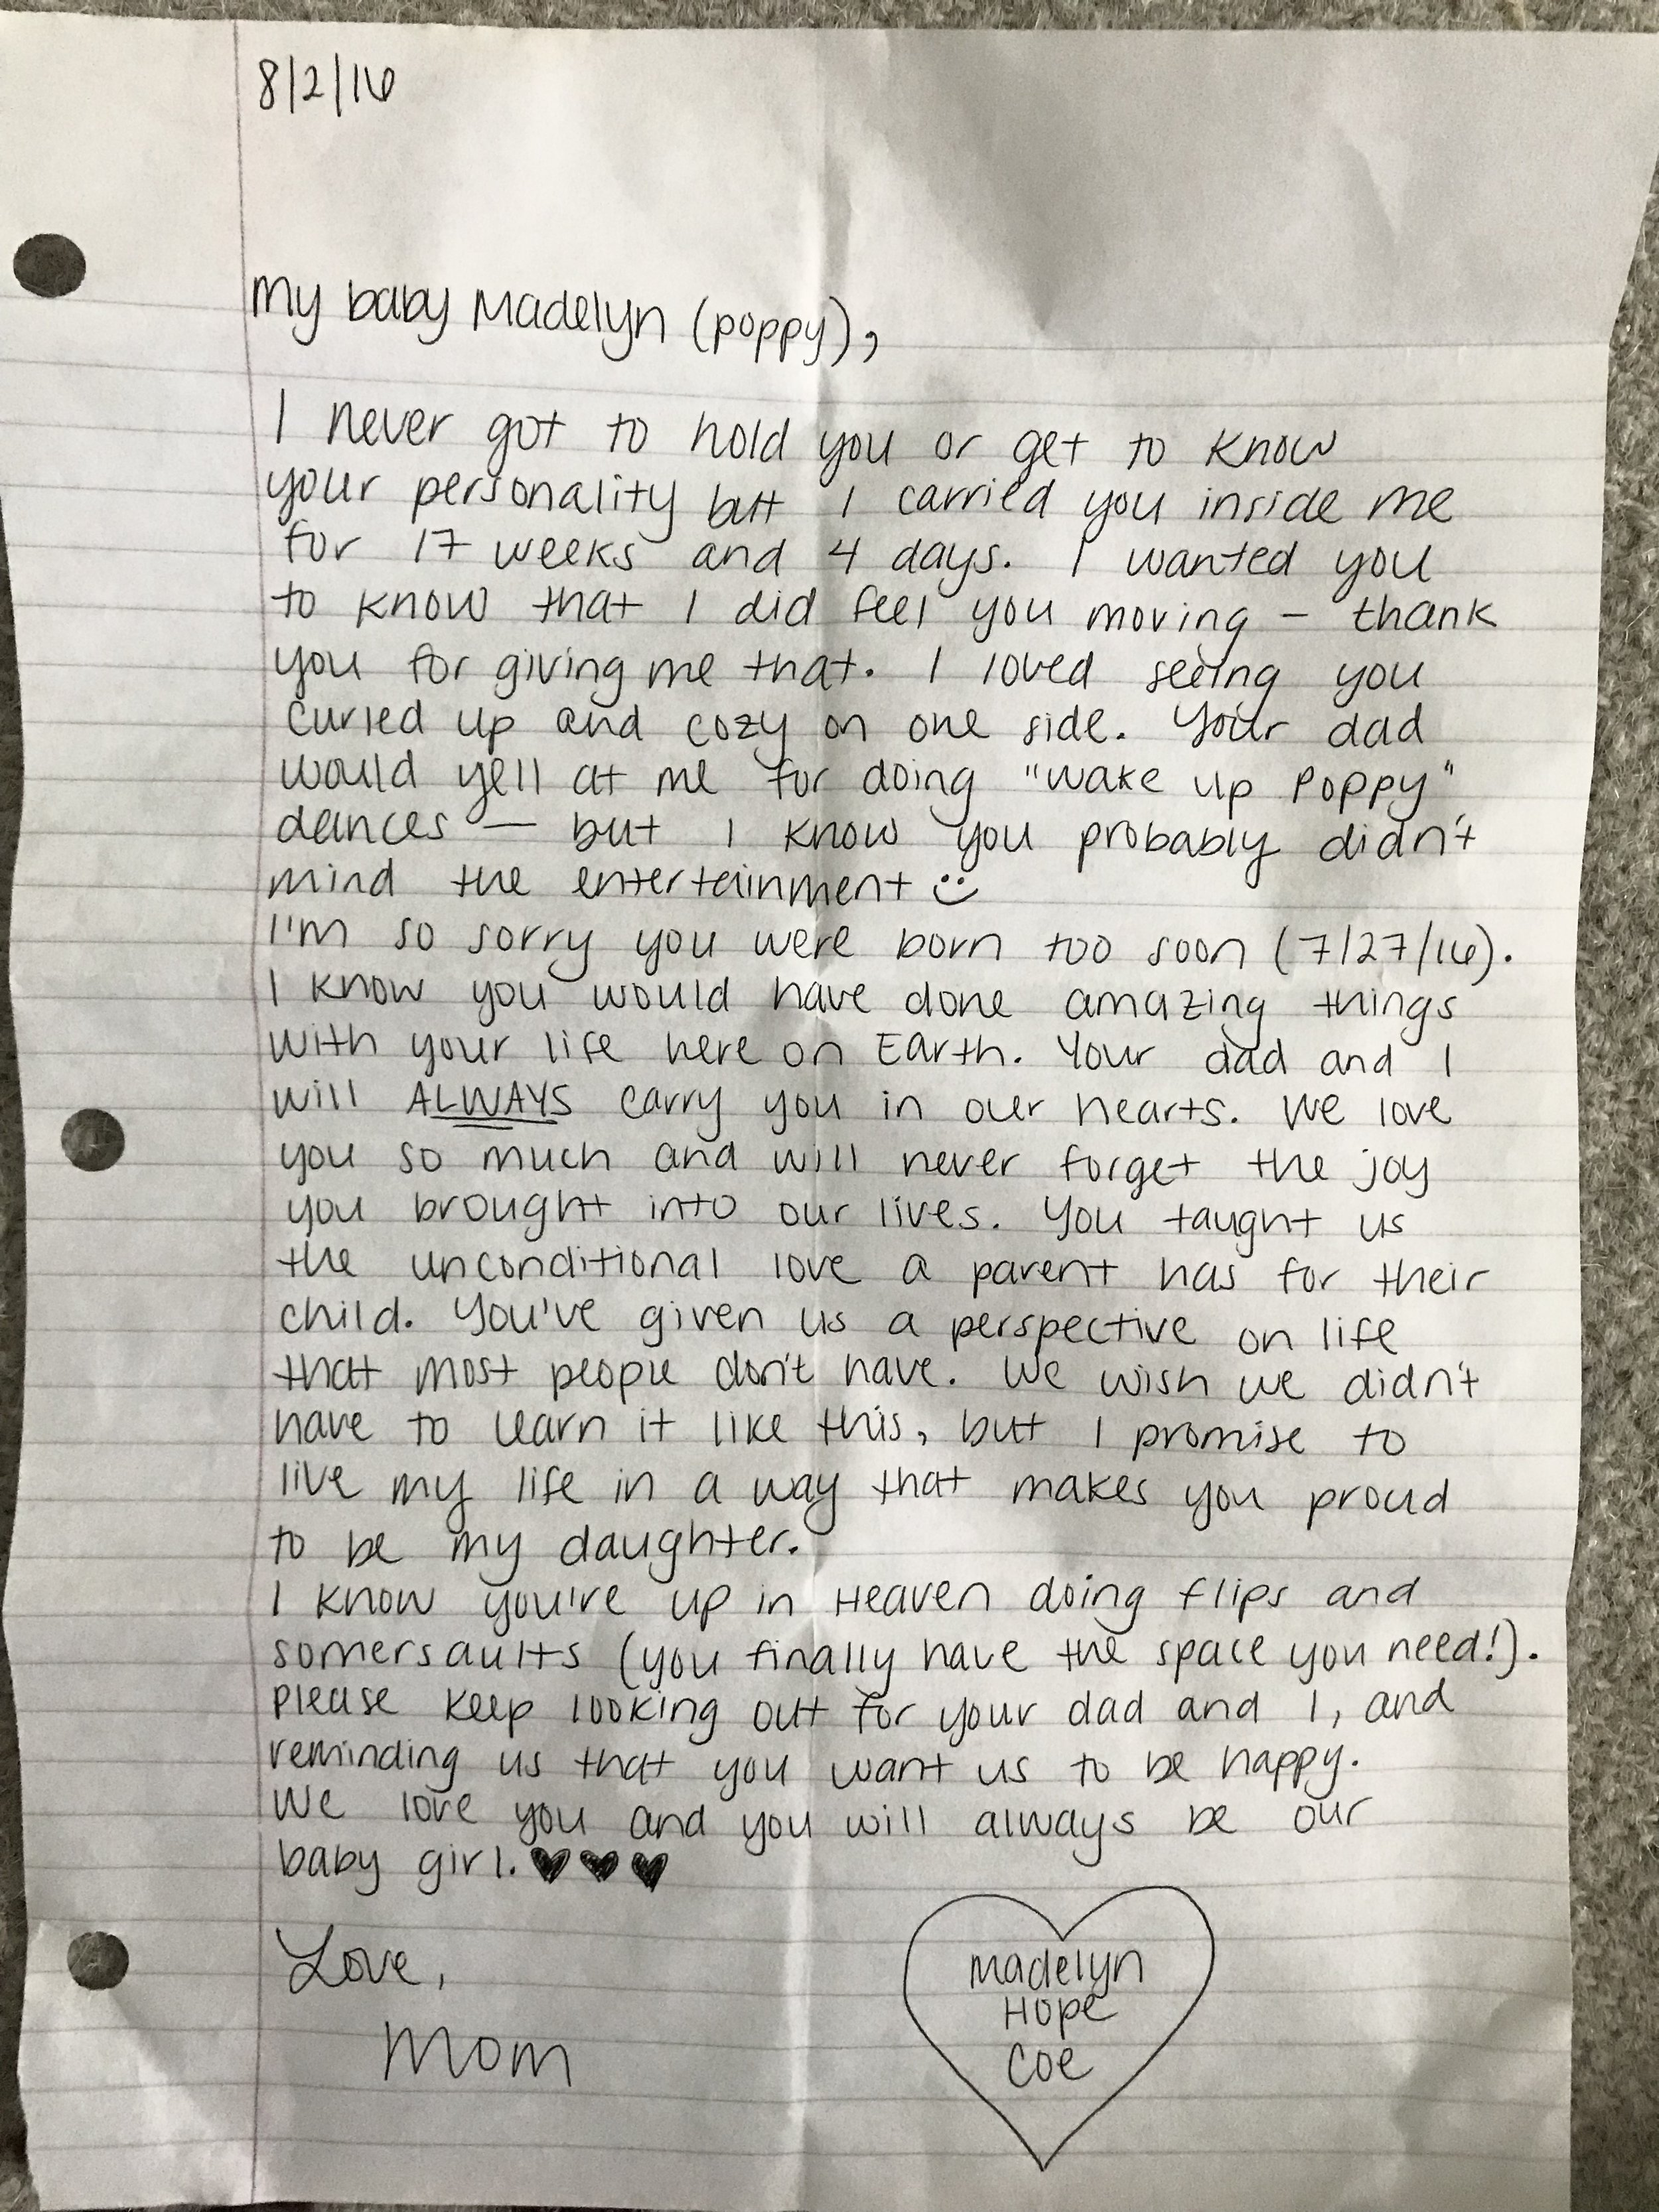 The letter I wrote to Madelyn about a week after she was born.